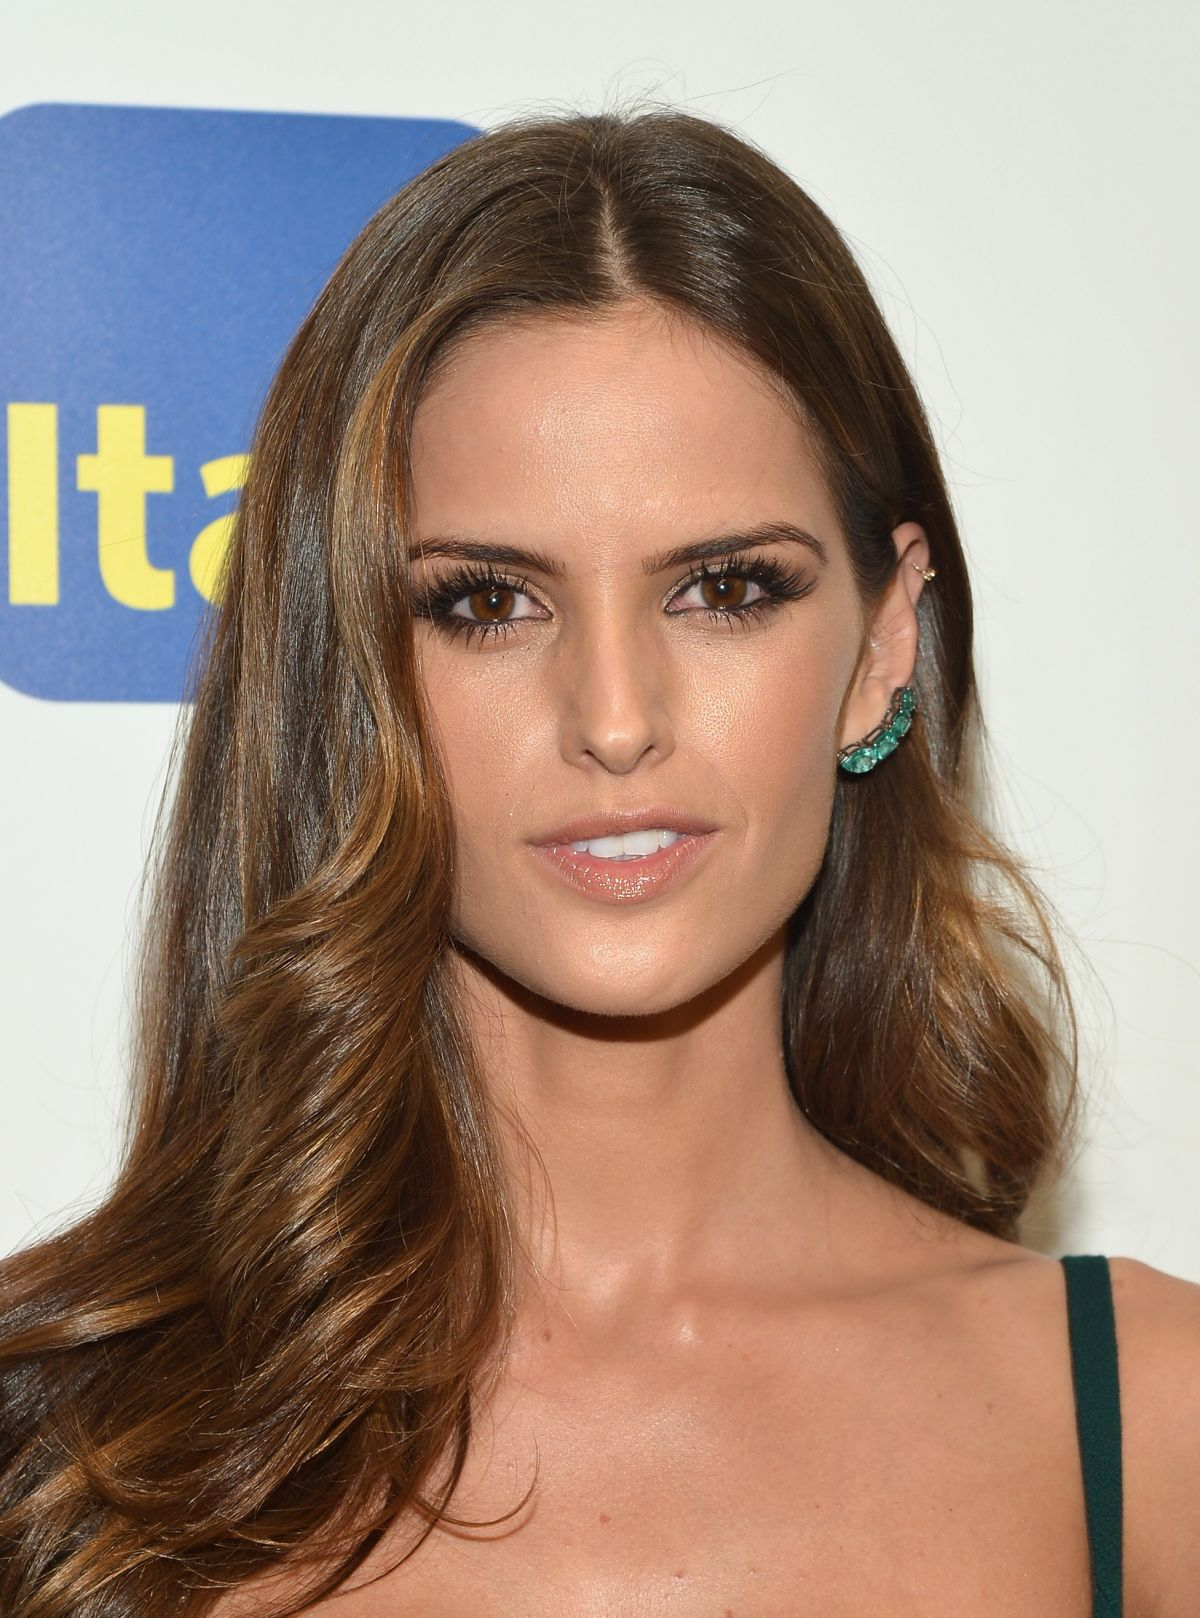 Izabel Goulart earned a  million dollar salary - leaving the net worth at 3 million in 2017